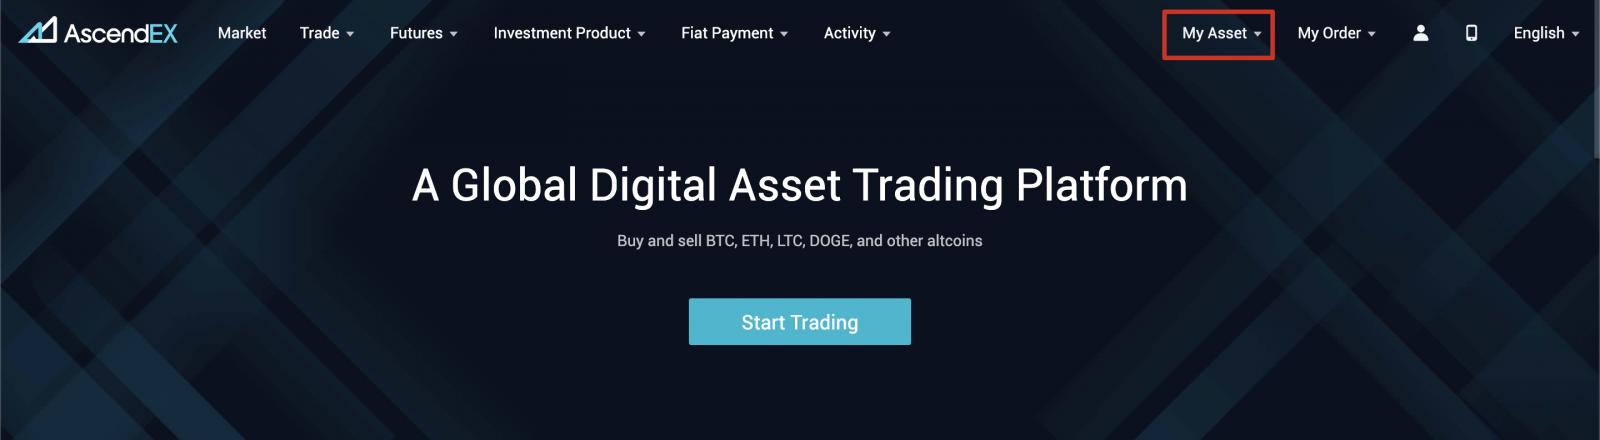 How to Withdraw Crypto from AscendEX